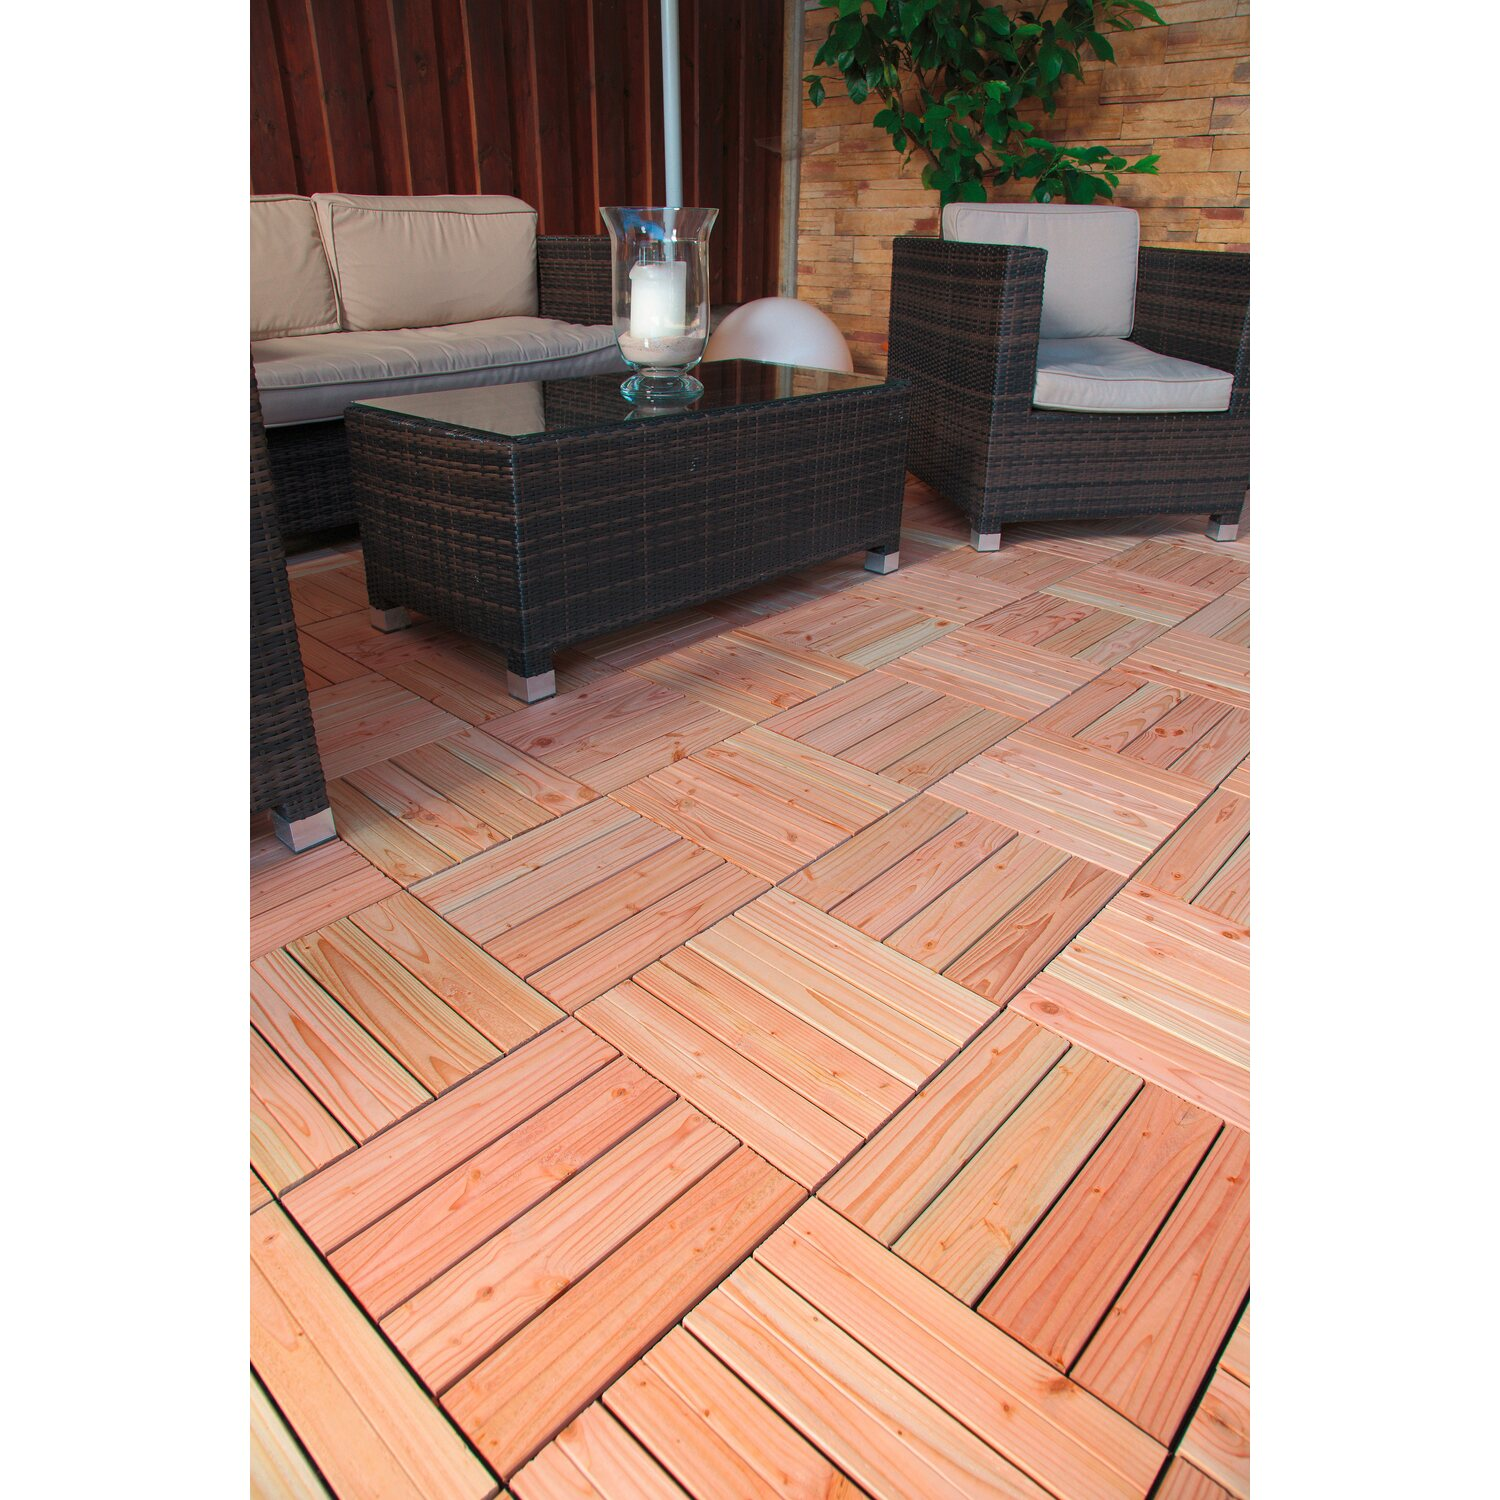 klick fliese holz douglasie 4 st ck 30 cm x 30 cm kaufen. Black Bedroom Furniture Sets. Home Design Ideas